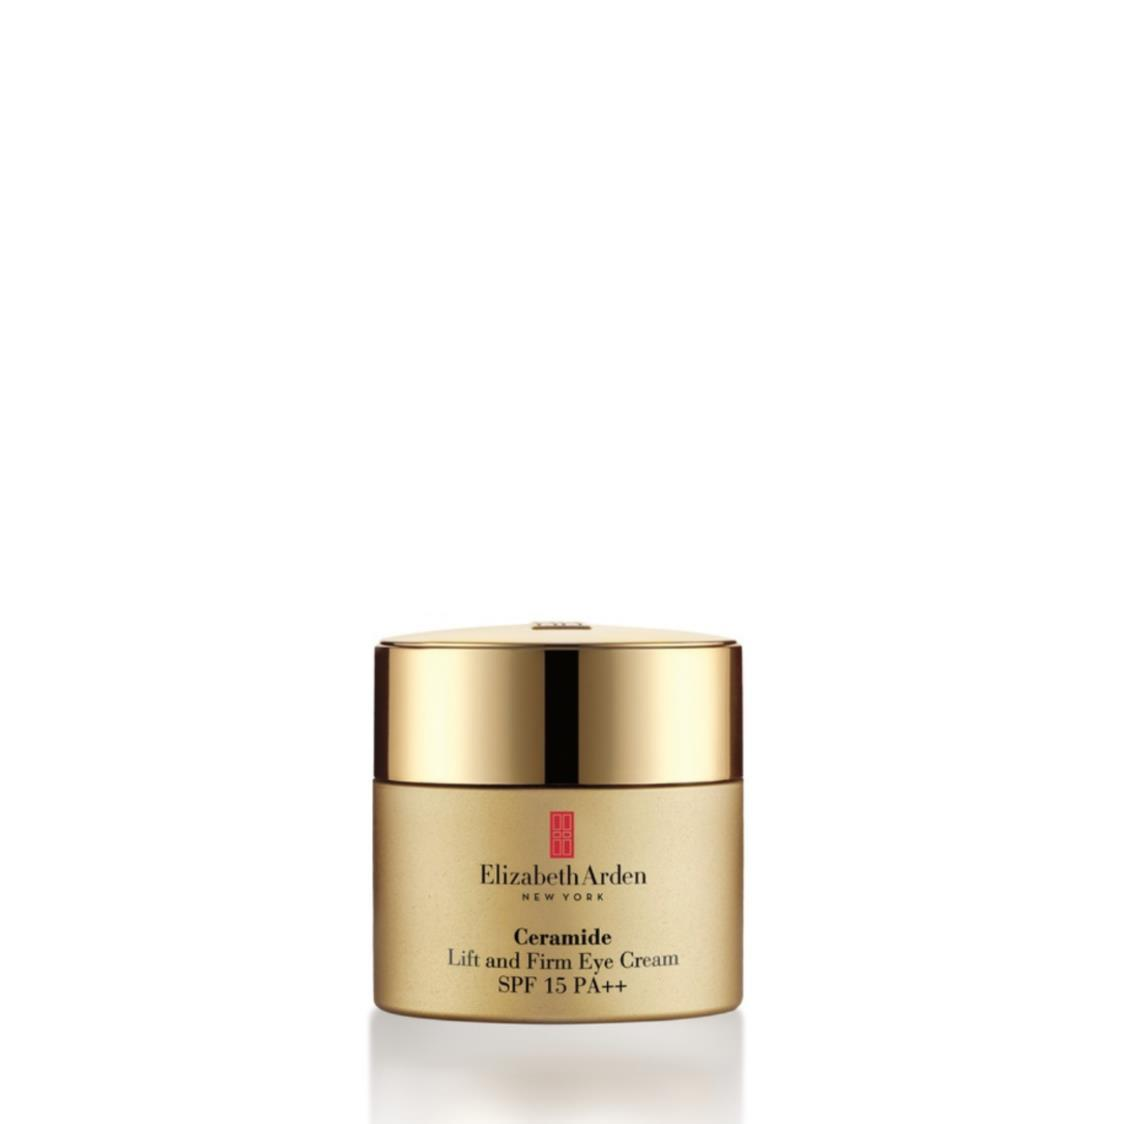 Ceramide Lift and Firm Eye Cream SPF15 PA